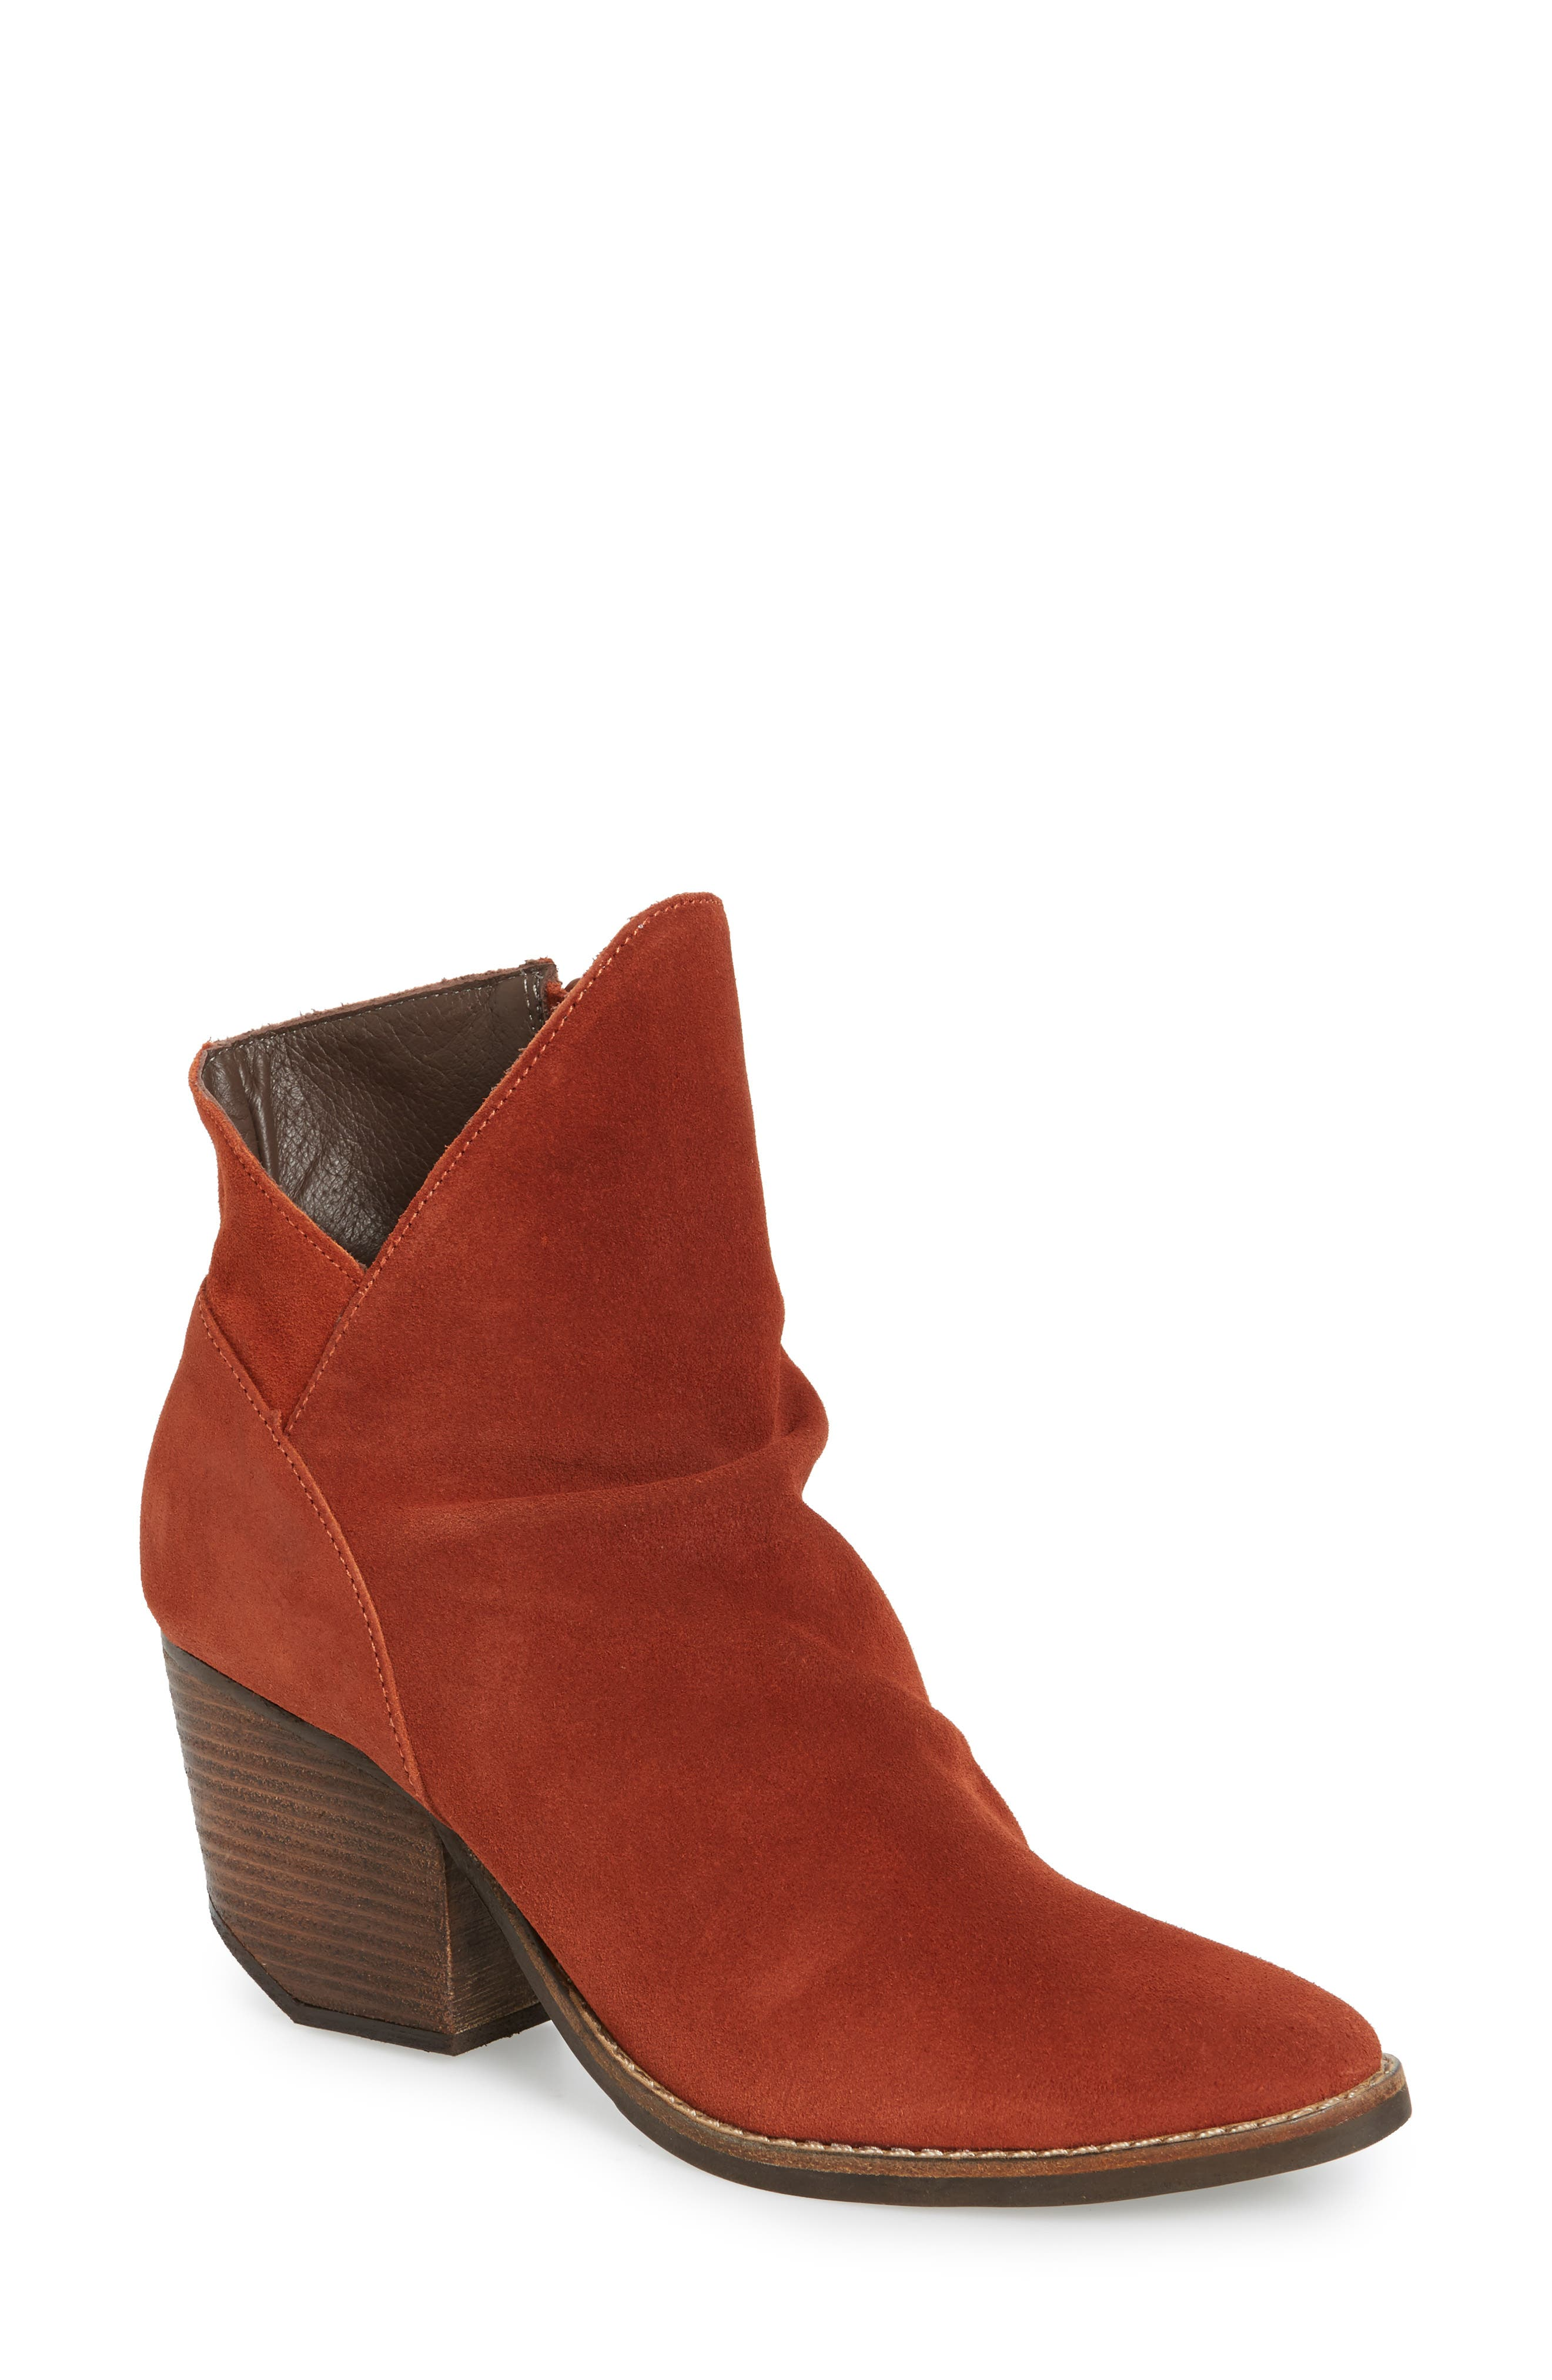 Society Bootie,                             Main thumbnail 1, color,                             Rust Suede